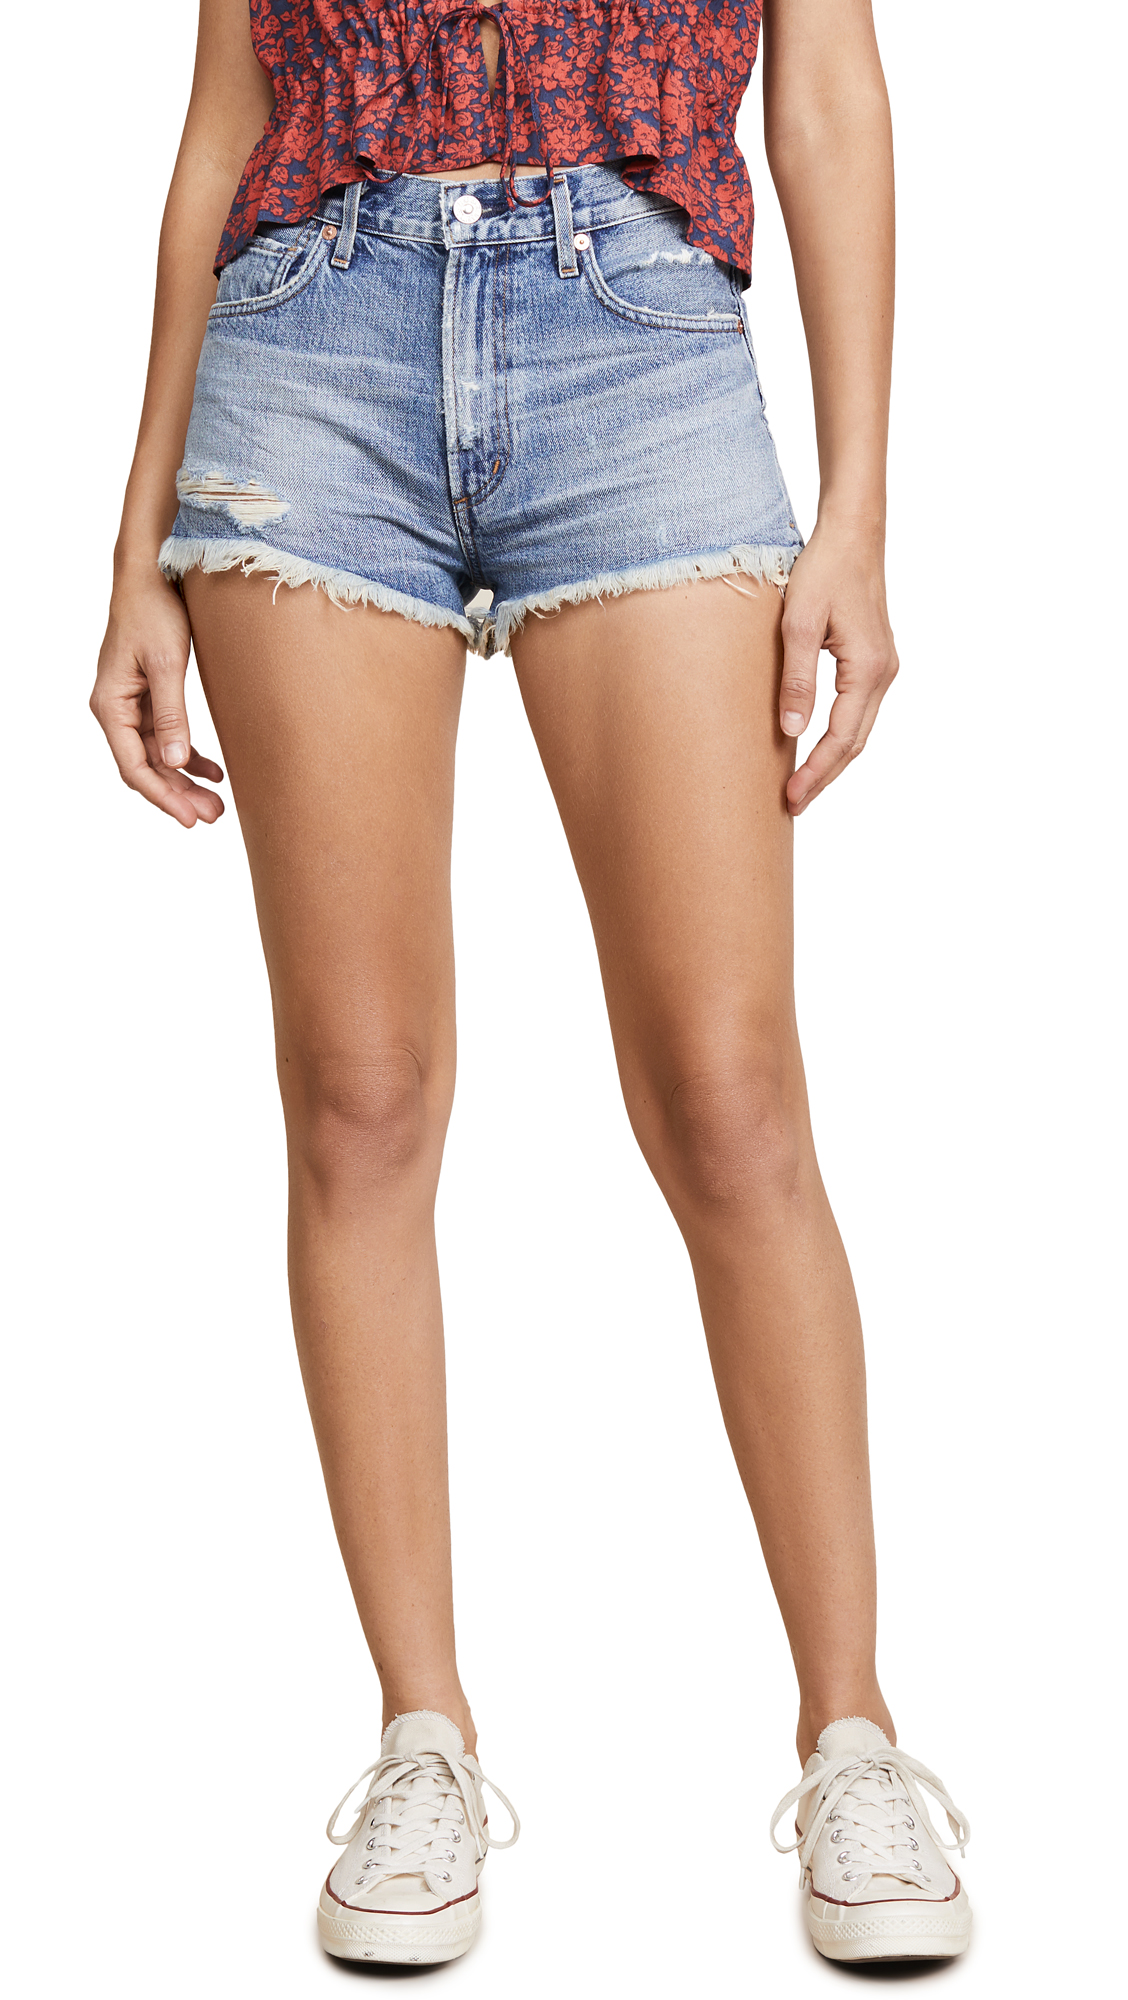 Citizens of Humanity Danielle Shorts In Mandrake